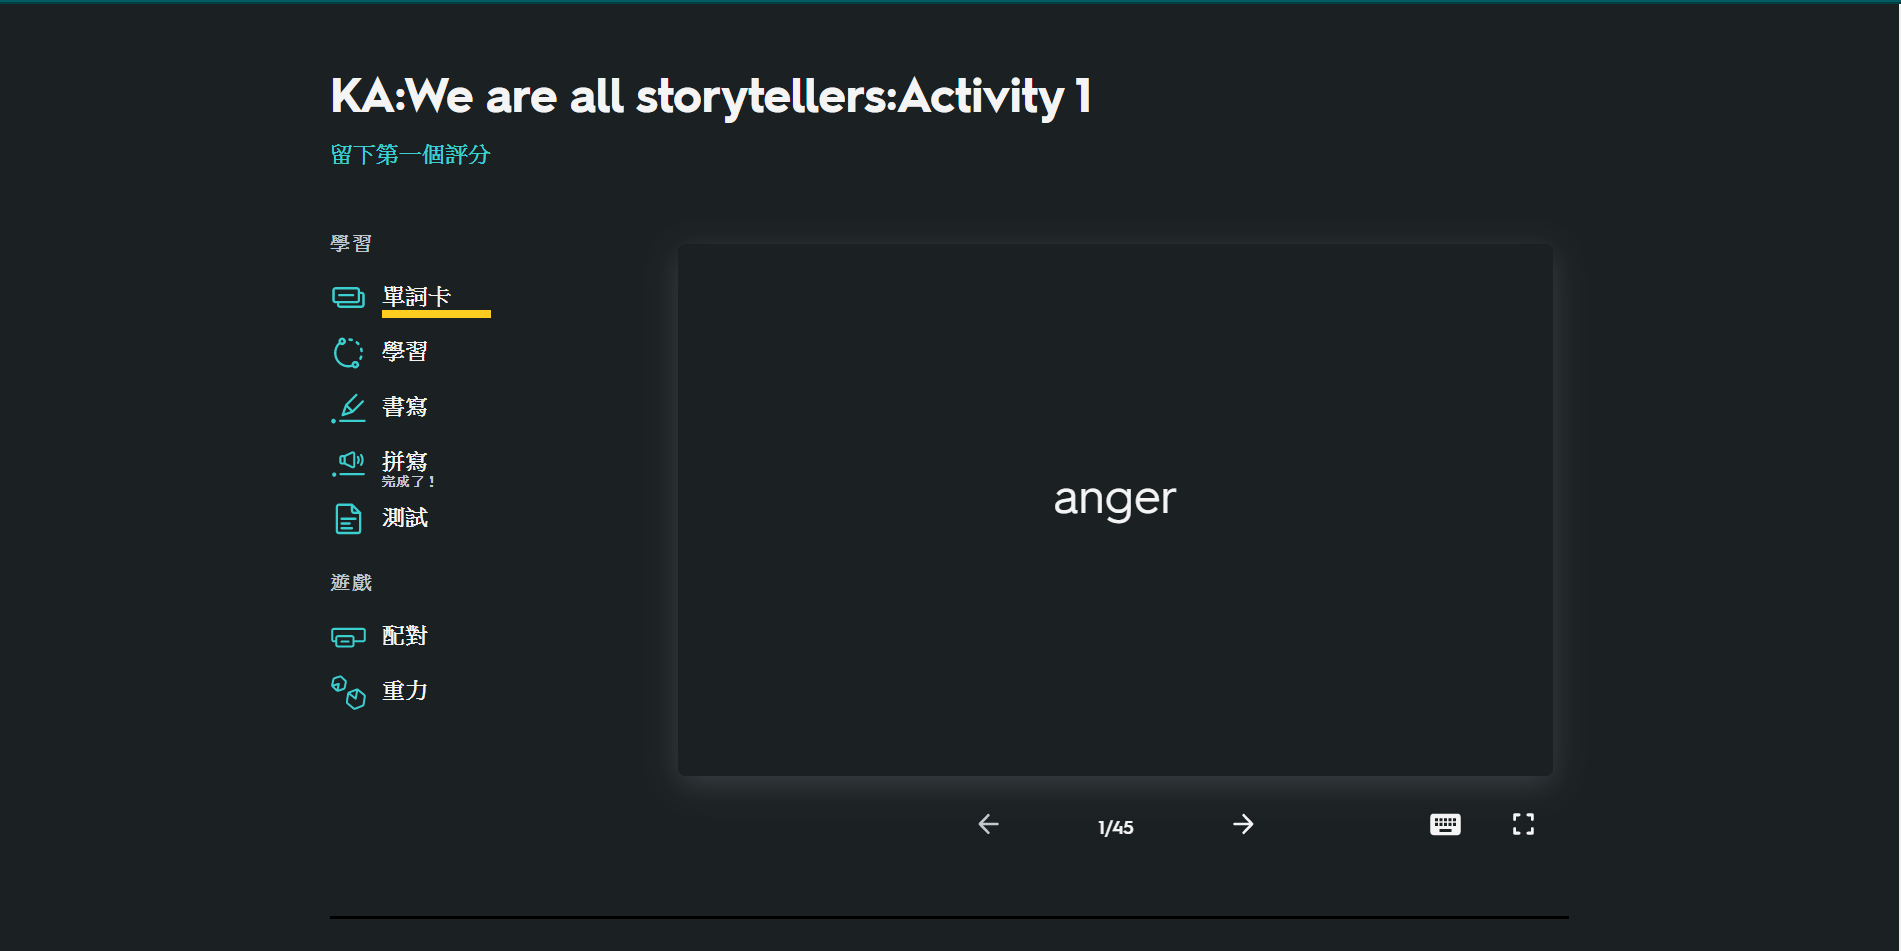 We are all storytellers:Activity 1複習